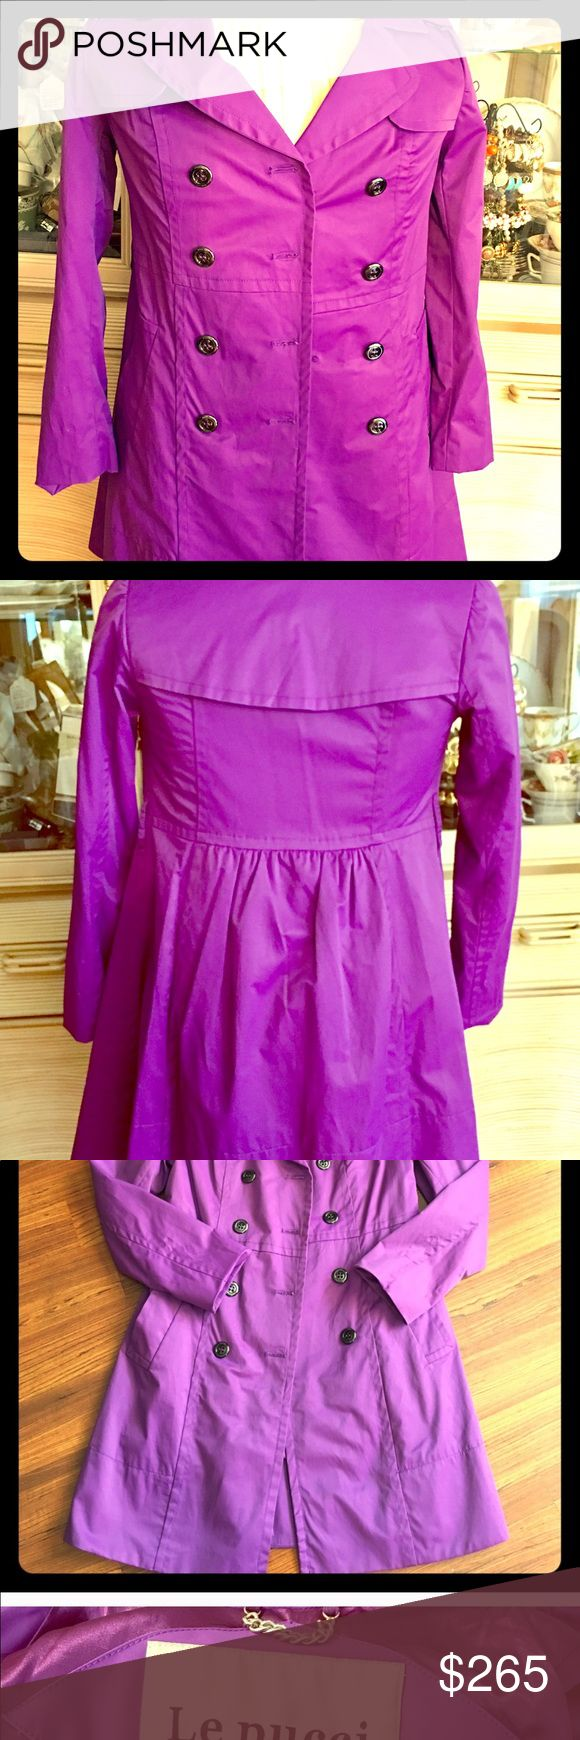 💕Burberry/ Le Pucci Trench Coat Very rare Emilio Pucci for Burberry Purple Trench Coat. This is a rare and one of a kind le Pucci trench coat. Size shown on pictures. Missing belt but still in perfect condition. Offers are welcome to this unique and gorgeous item. Le Pucci/Burberry Dresses